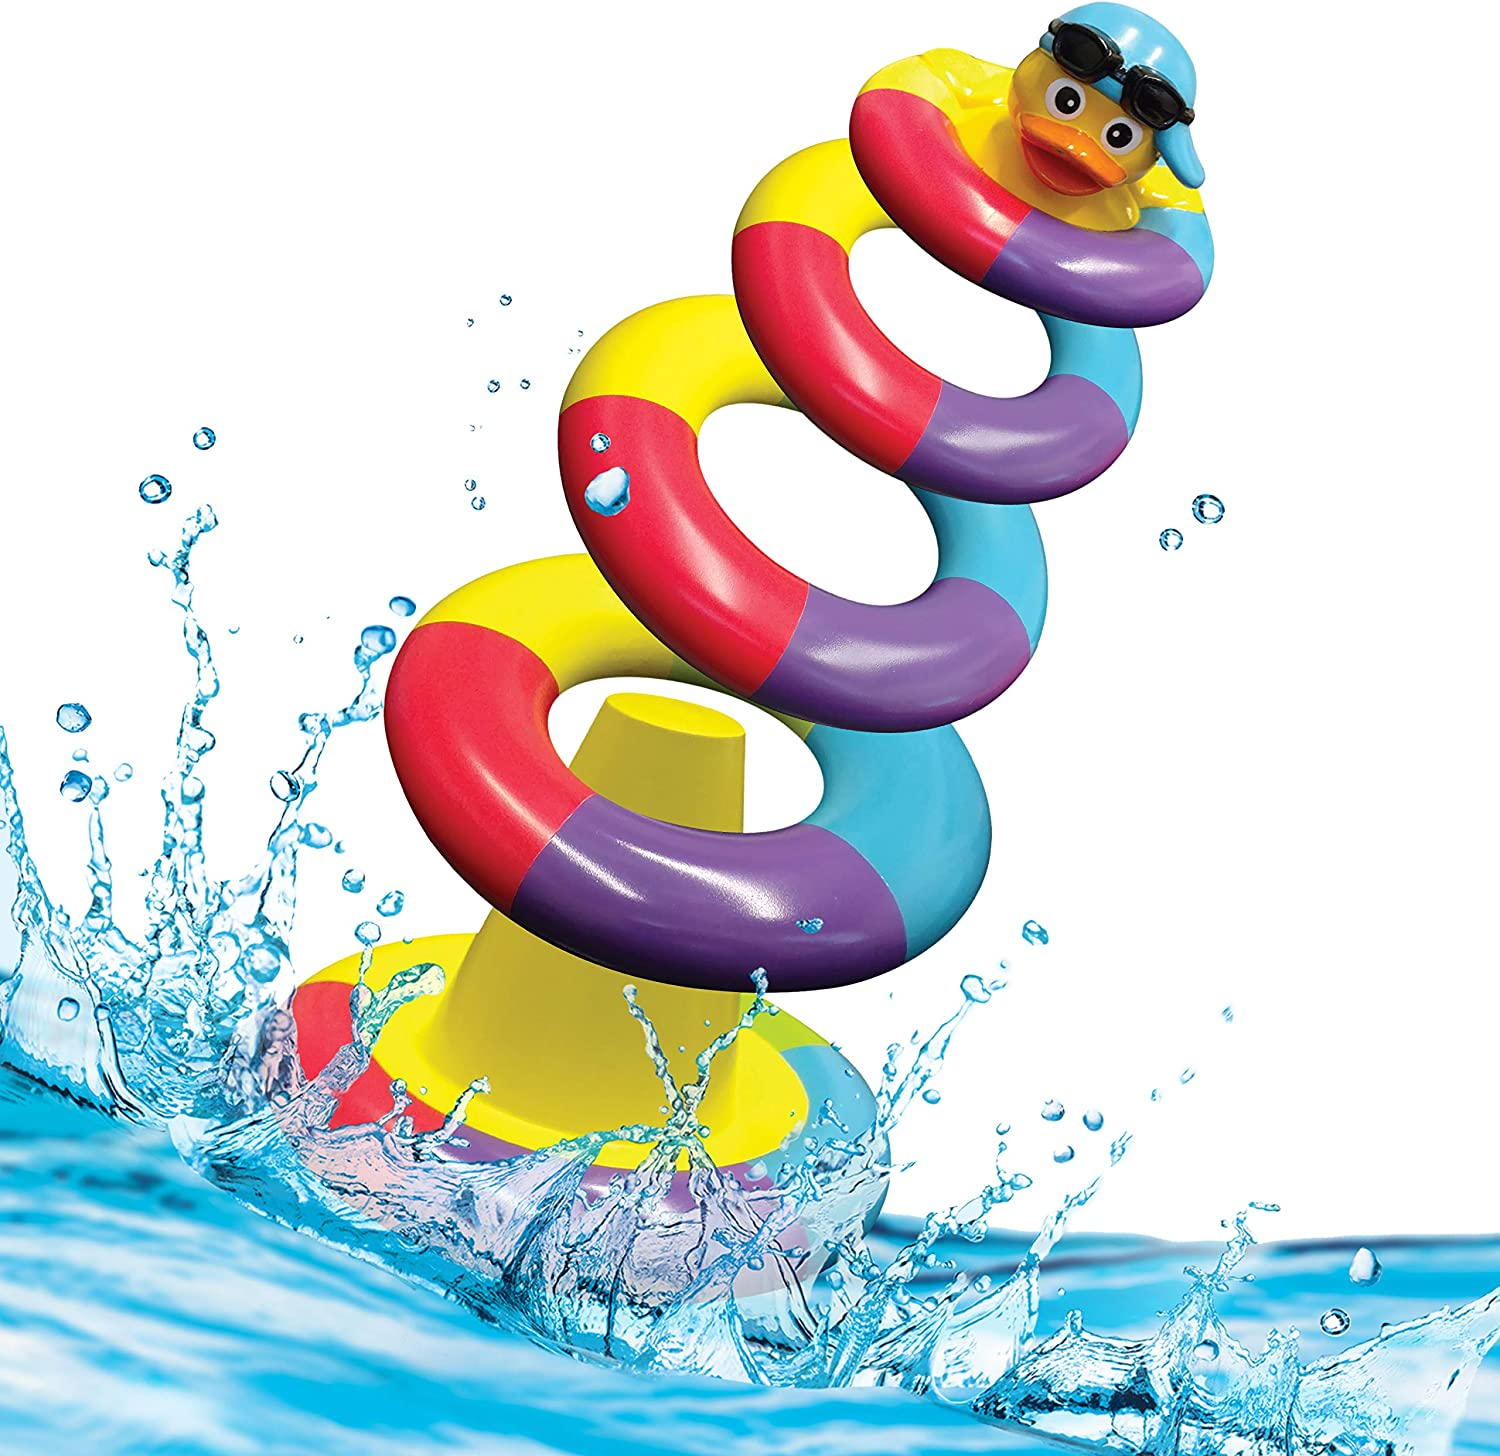 Playahoy Floating Bath Toys for Boys Float Credence St Girls and Tulsa Mall Play